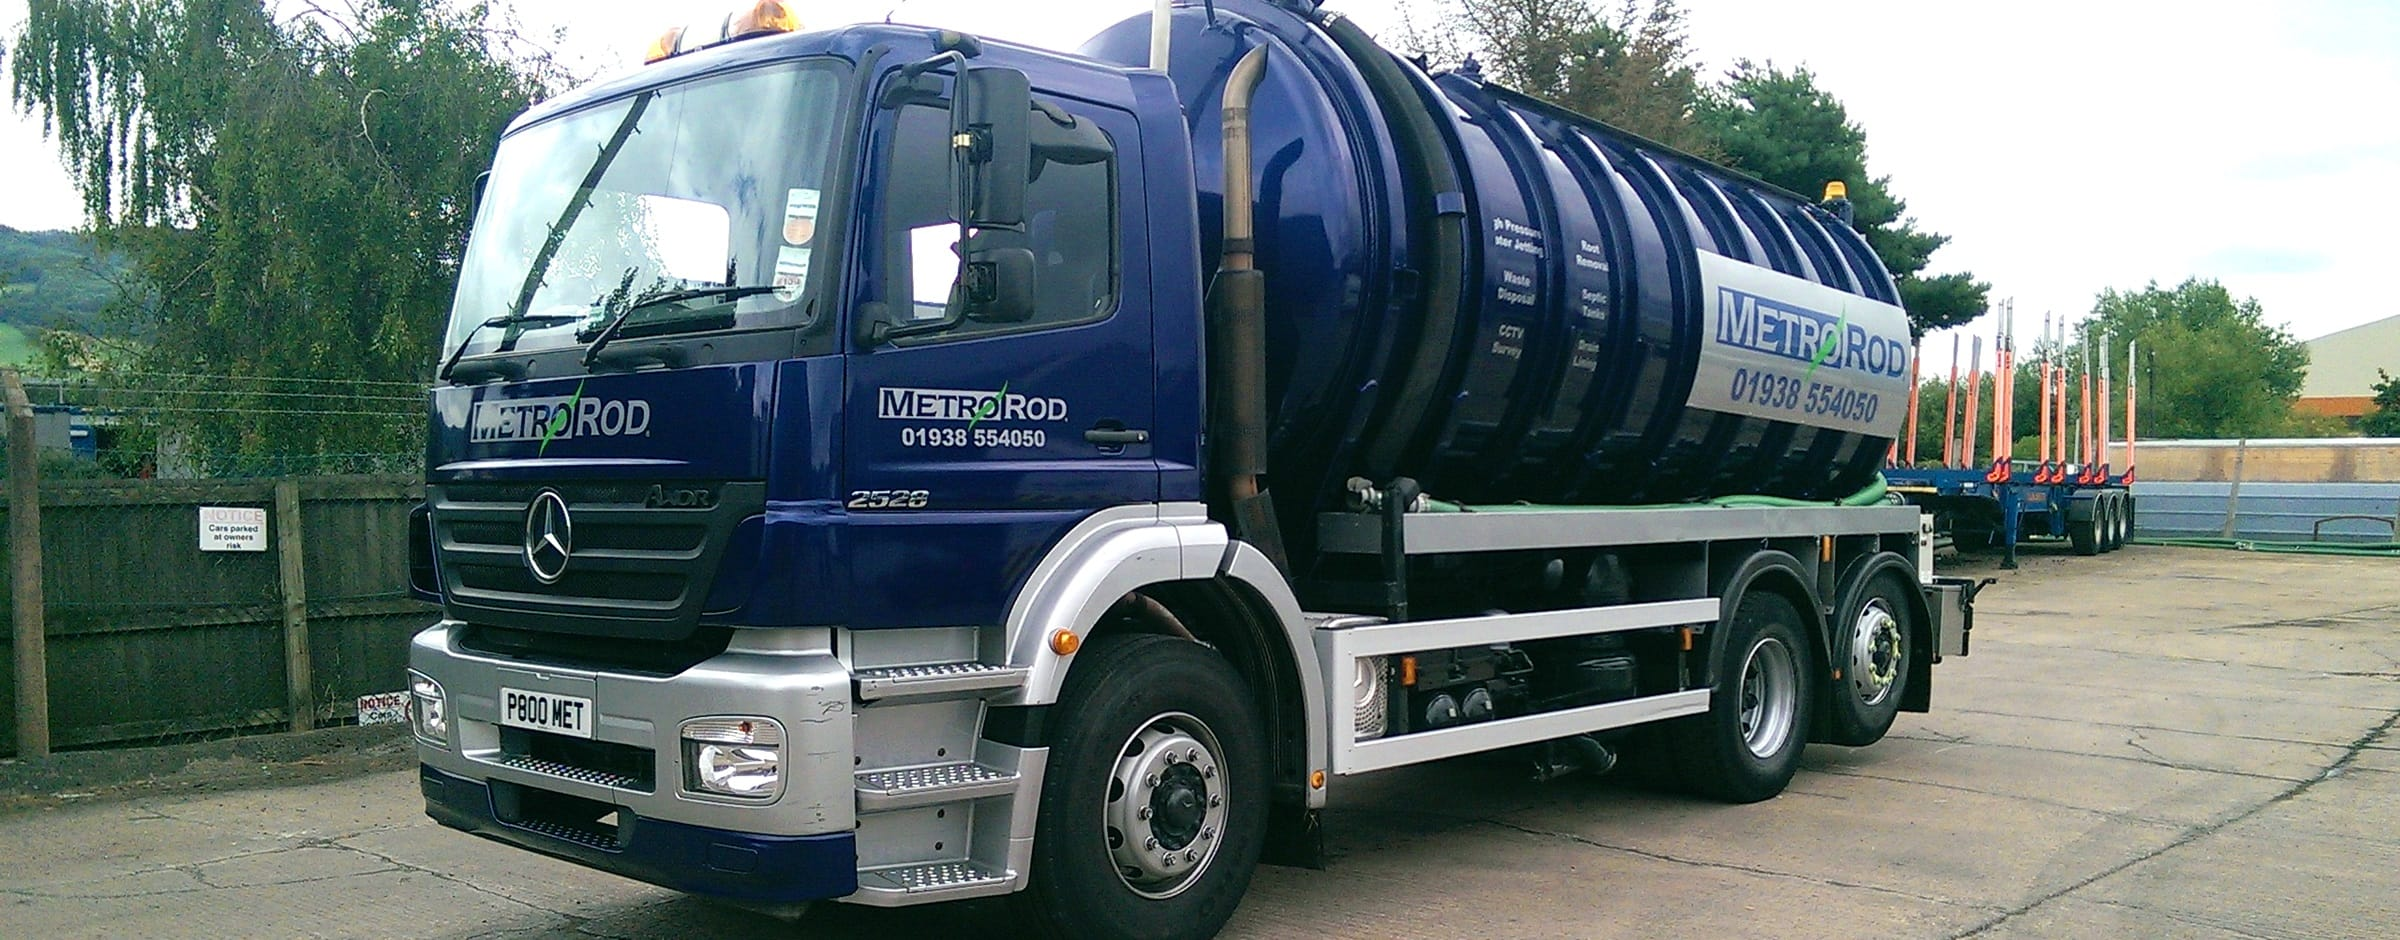 Septic Tank Emptying Amp Cleaning Cesspit Services Metro Rod